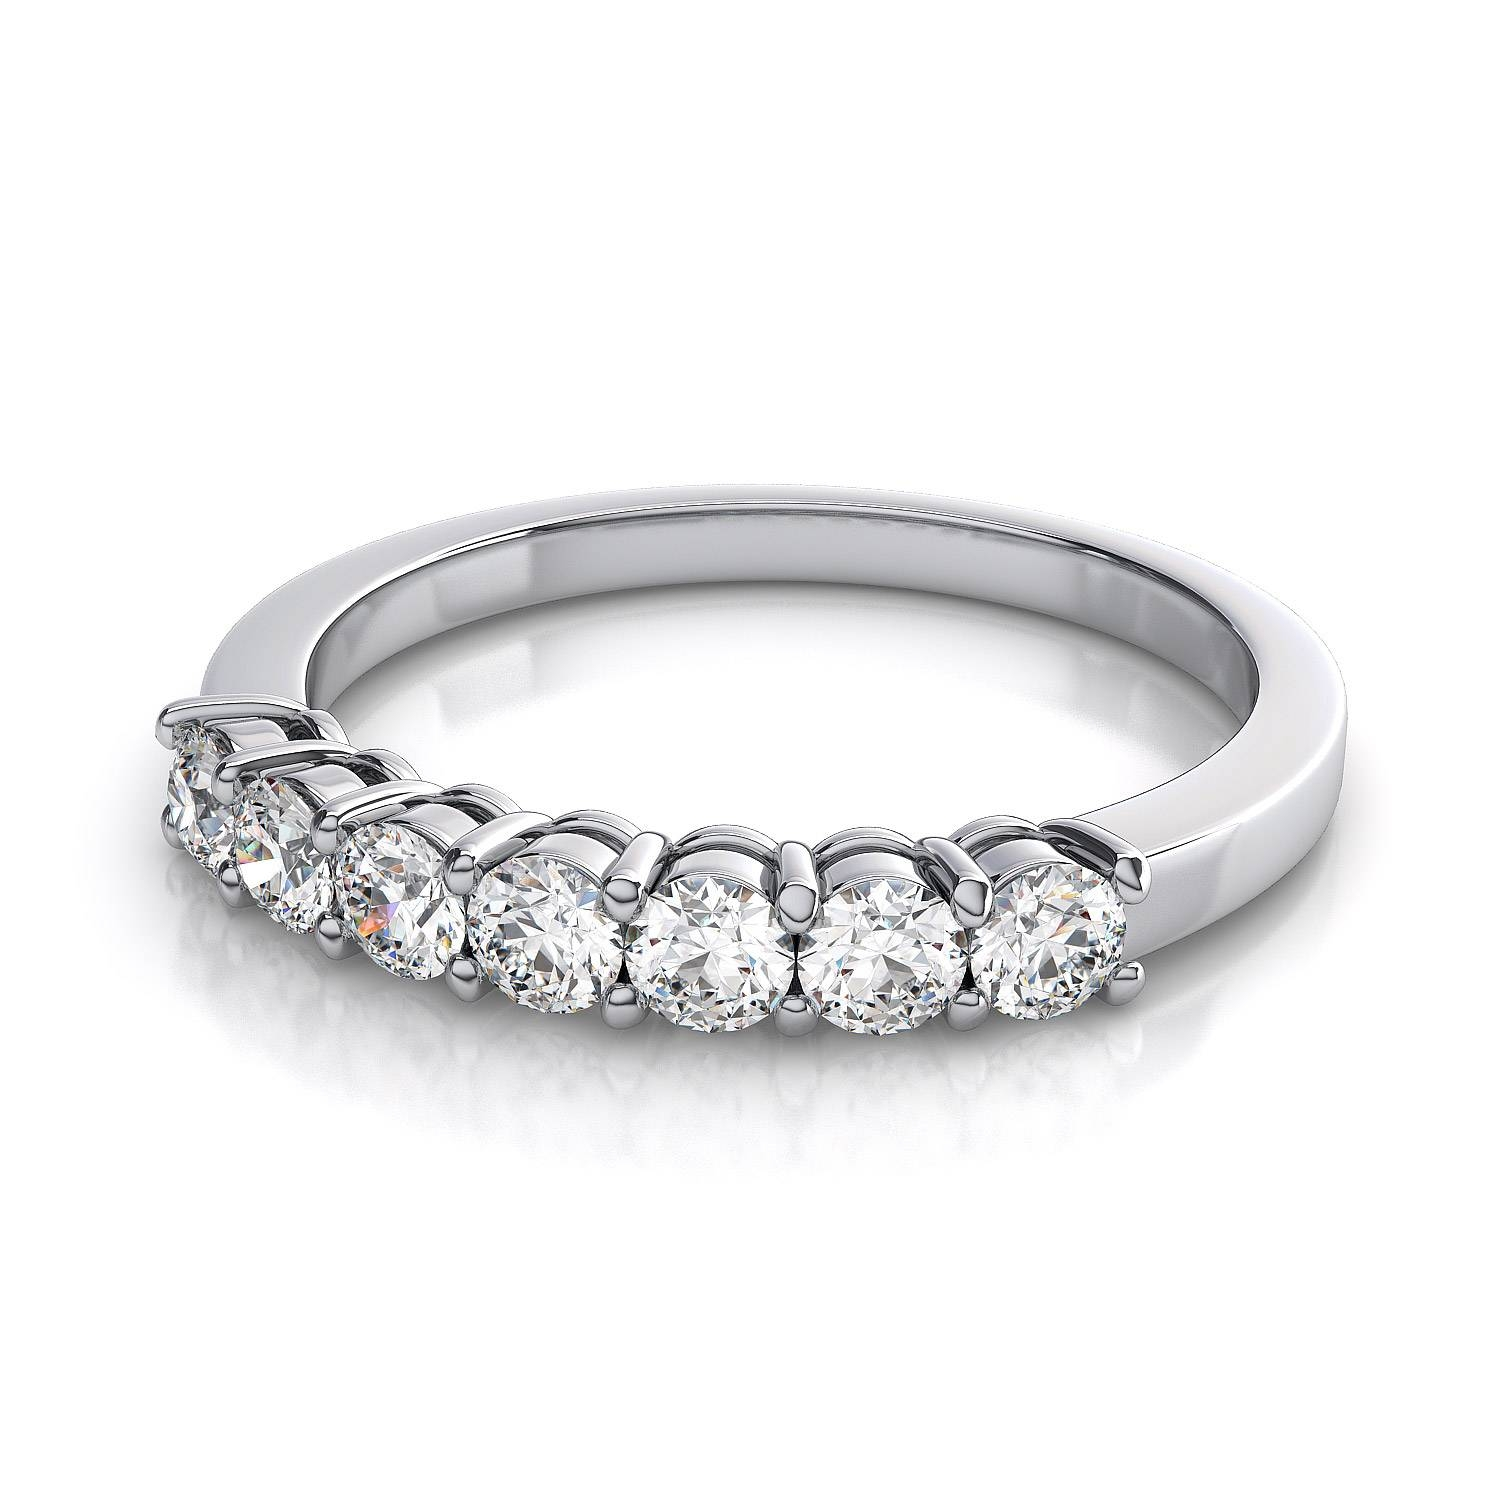 7 Stone Diamond Wedding Band In 18k White Gold Vs G H Regarding 7 Diamond Engagement Rings (View 13 of 15)